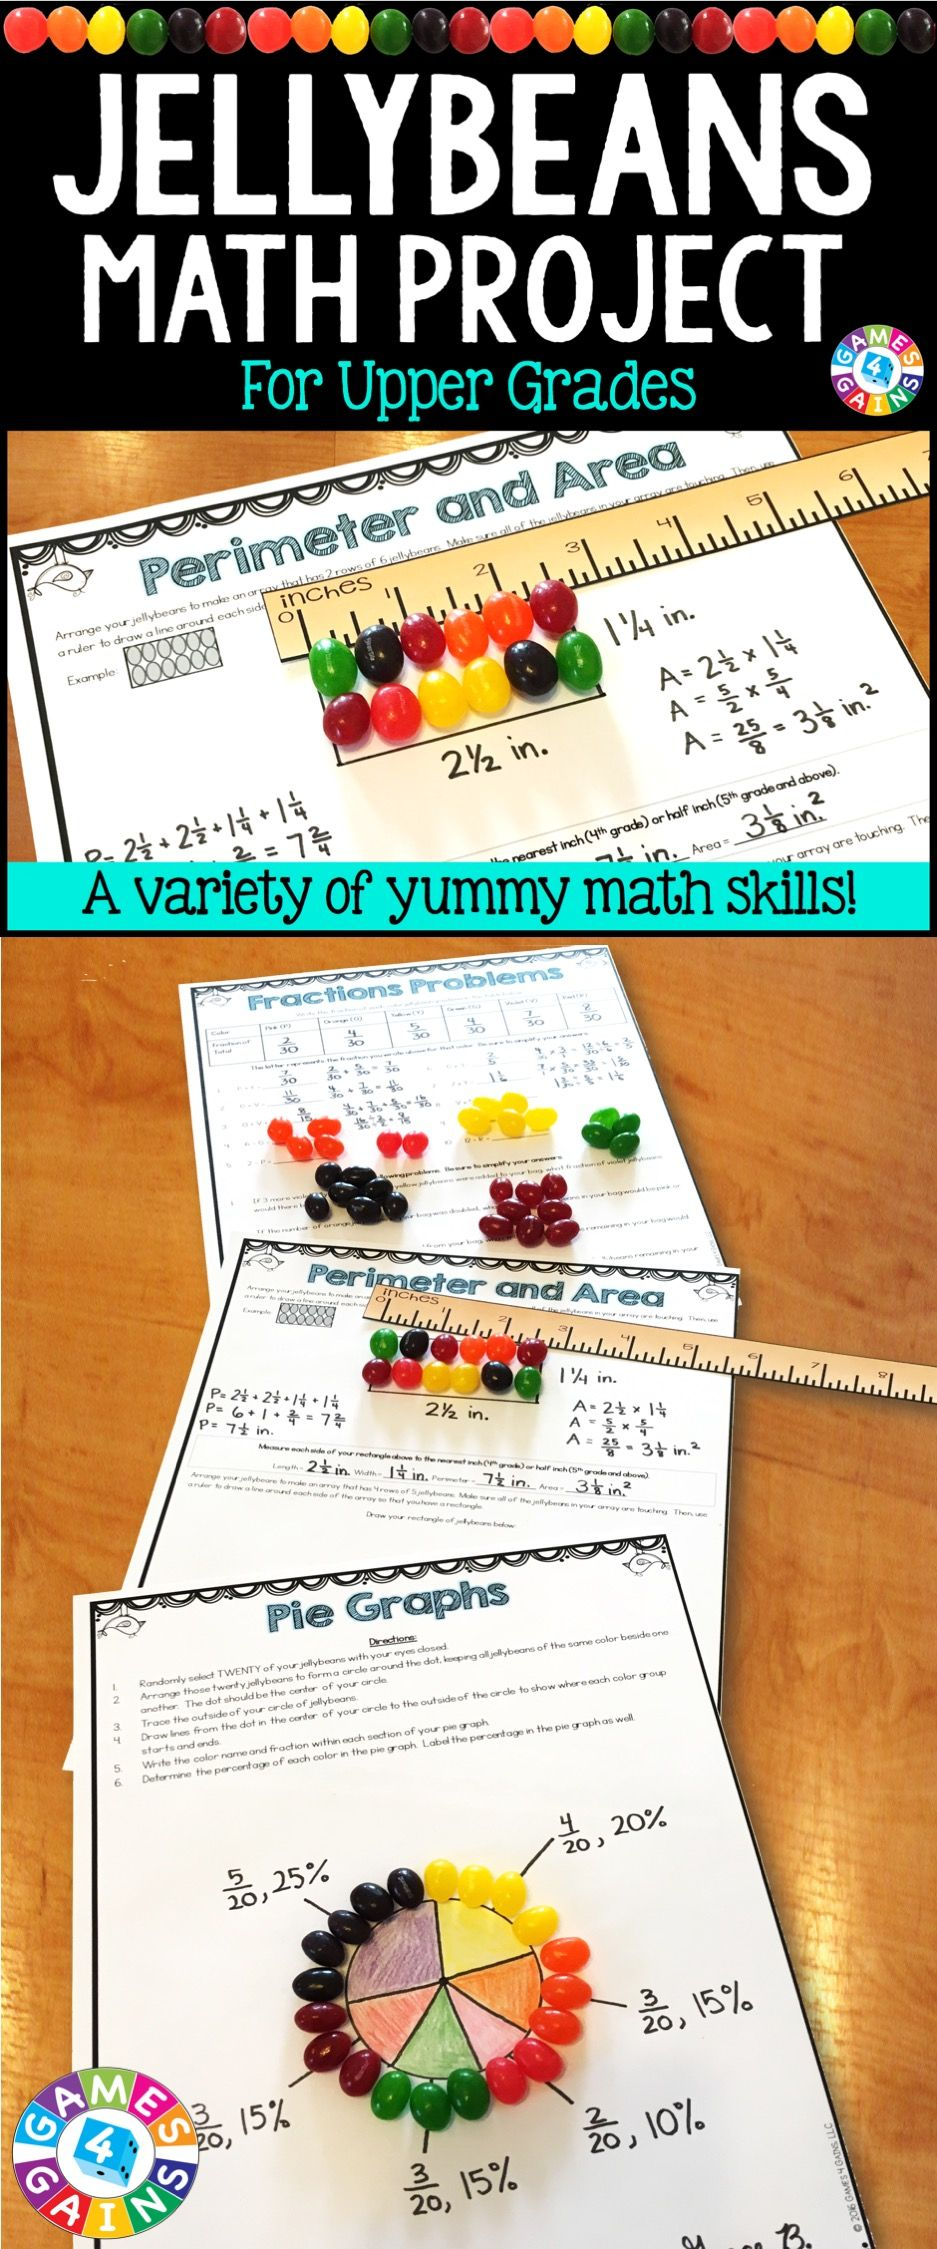 easter jellybean activities easter math with jellybeans games 4 gains products teaching. Black Bedroom Furniture Sets. Home Design Ideas